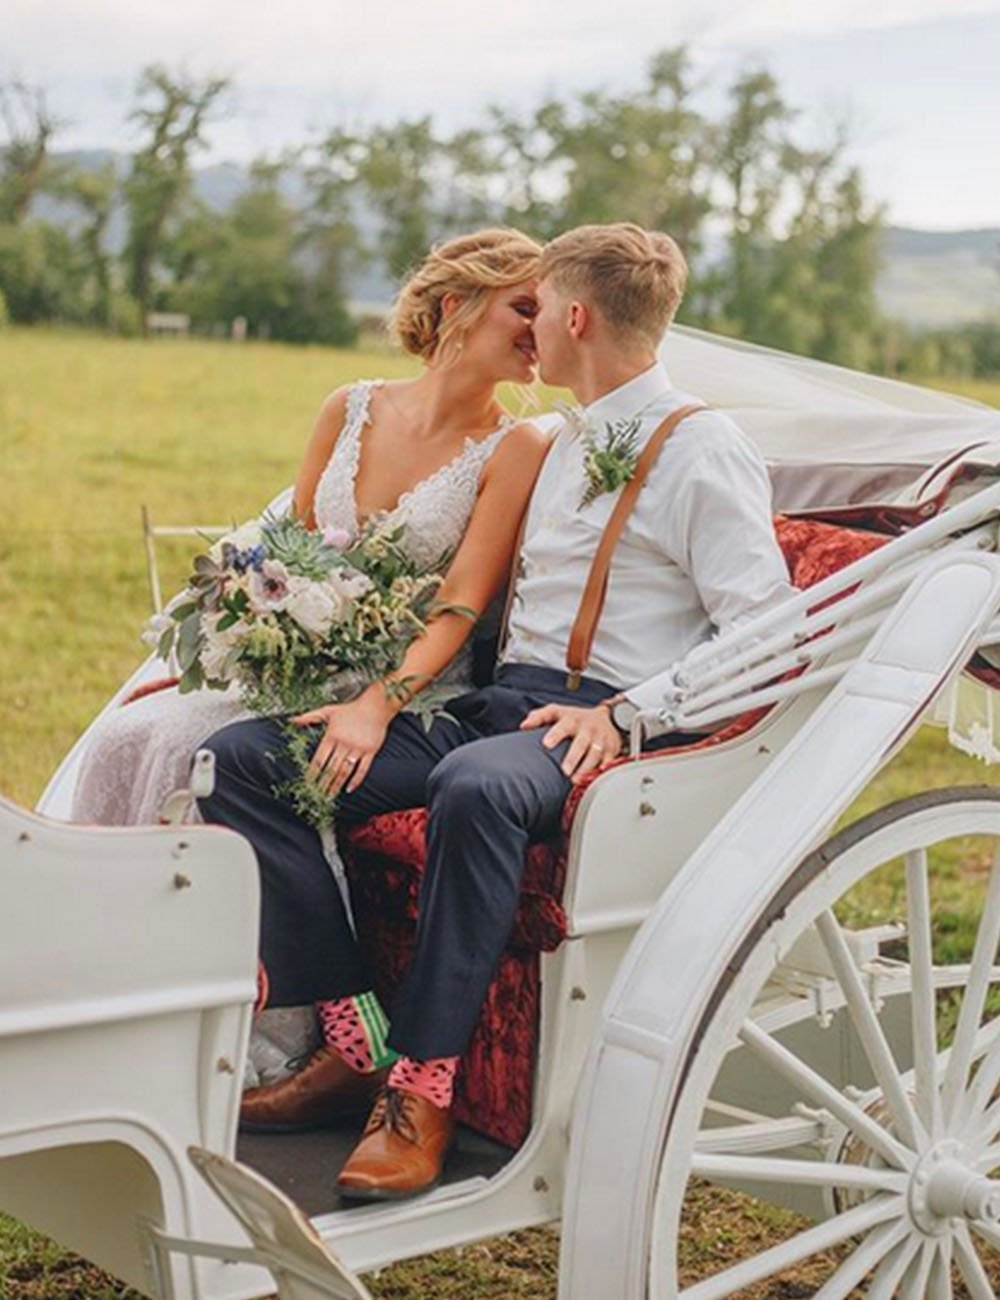 Hart Ranch horse drawn carriage with bride and groom in field